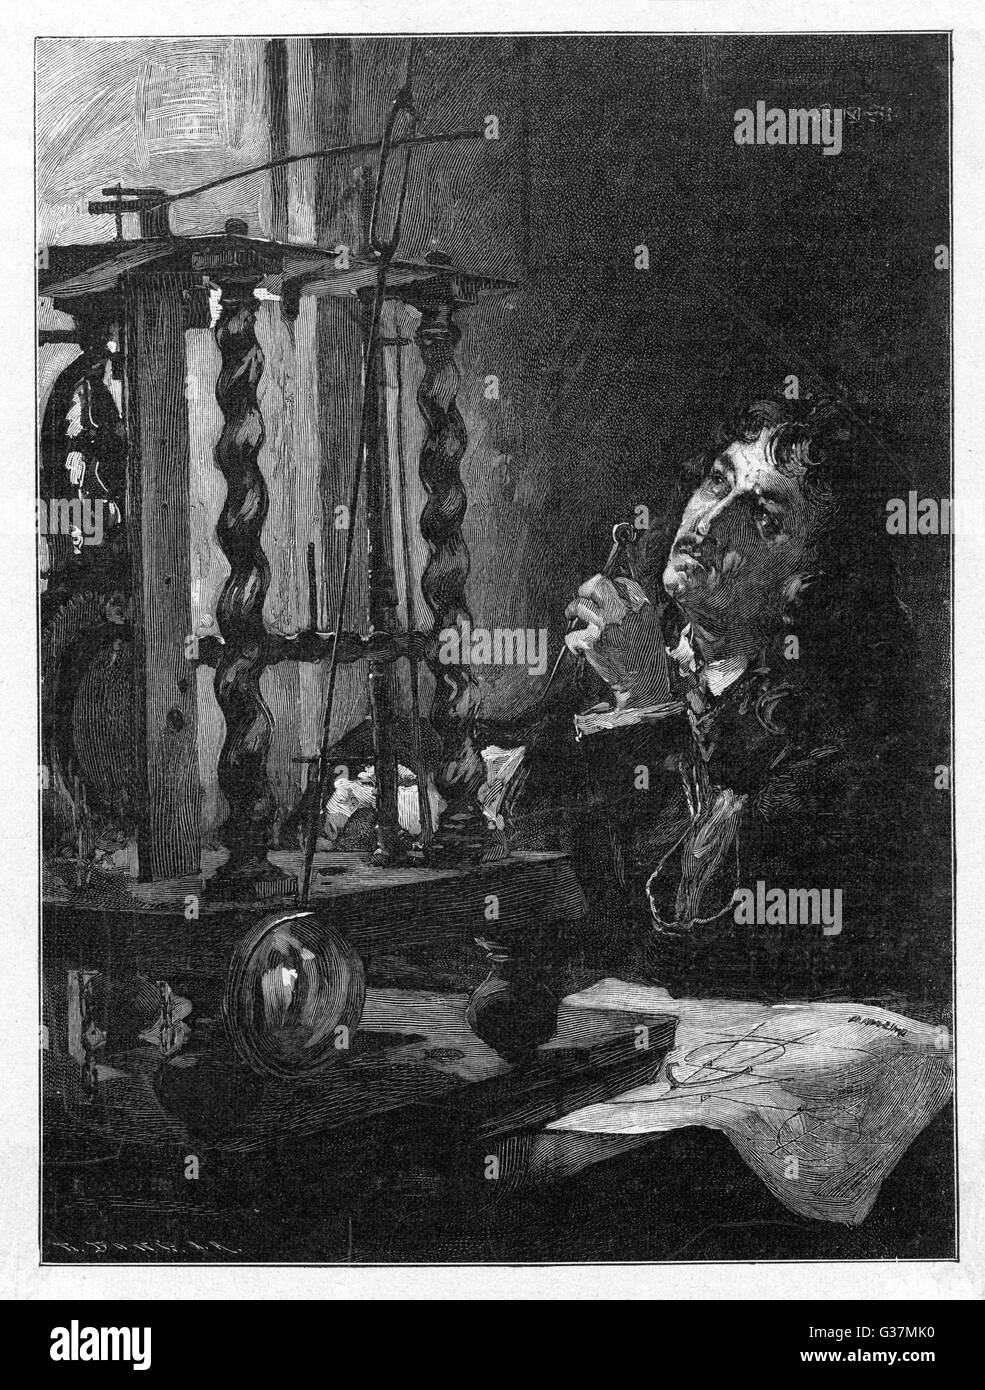 Christiaan Huygens (1629-1695), Dutch mathematician and scientist, working on his invention of the first pendulum - Stock Image